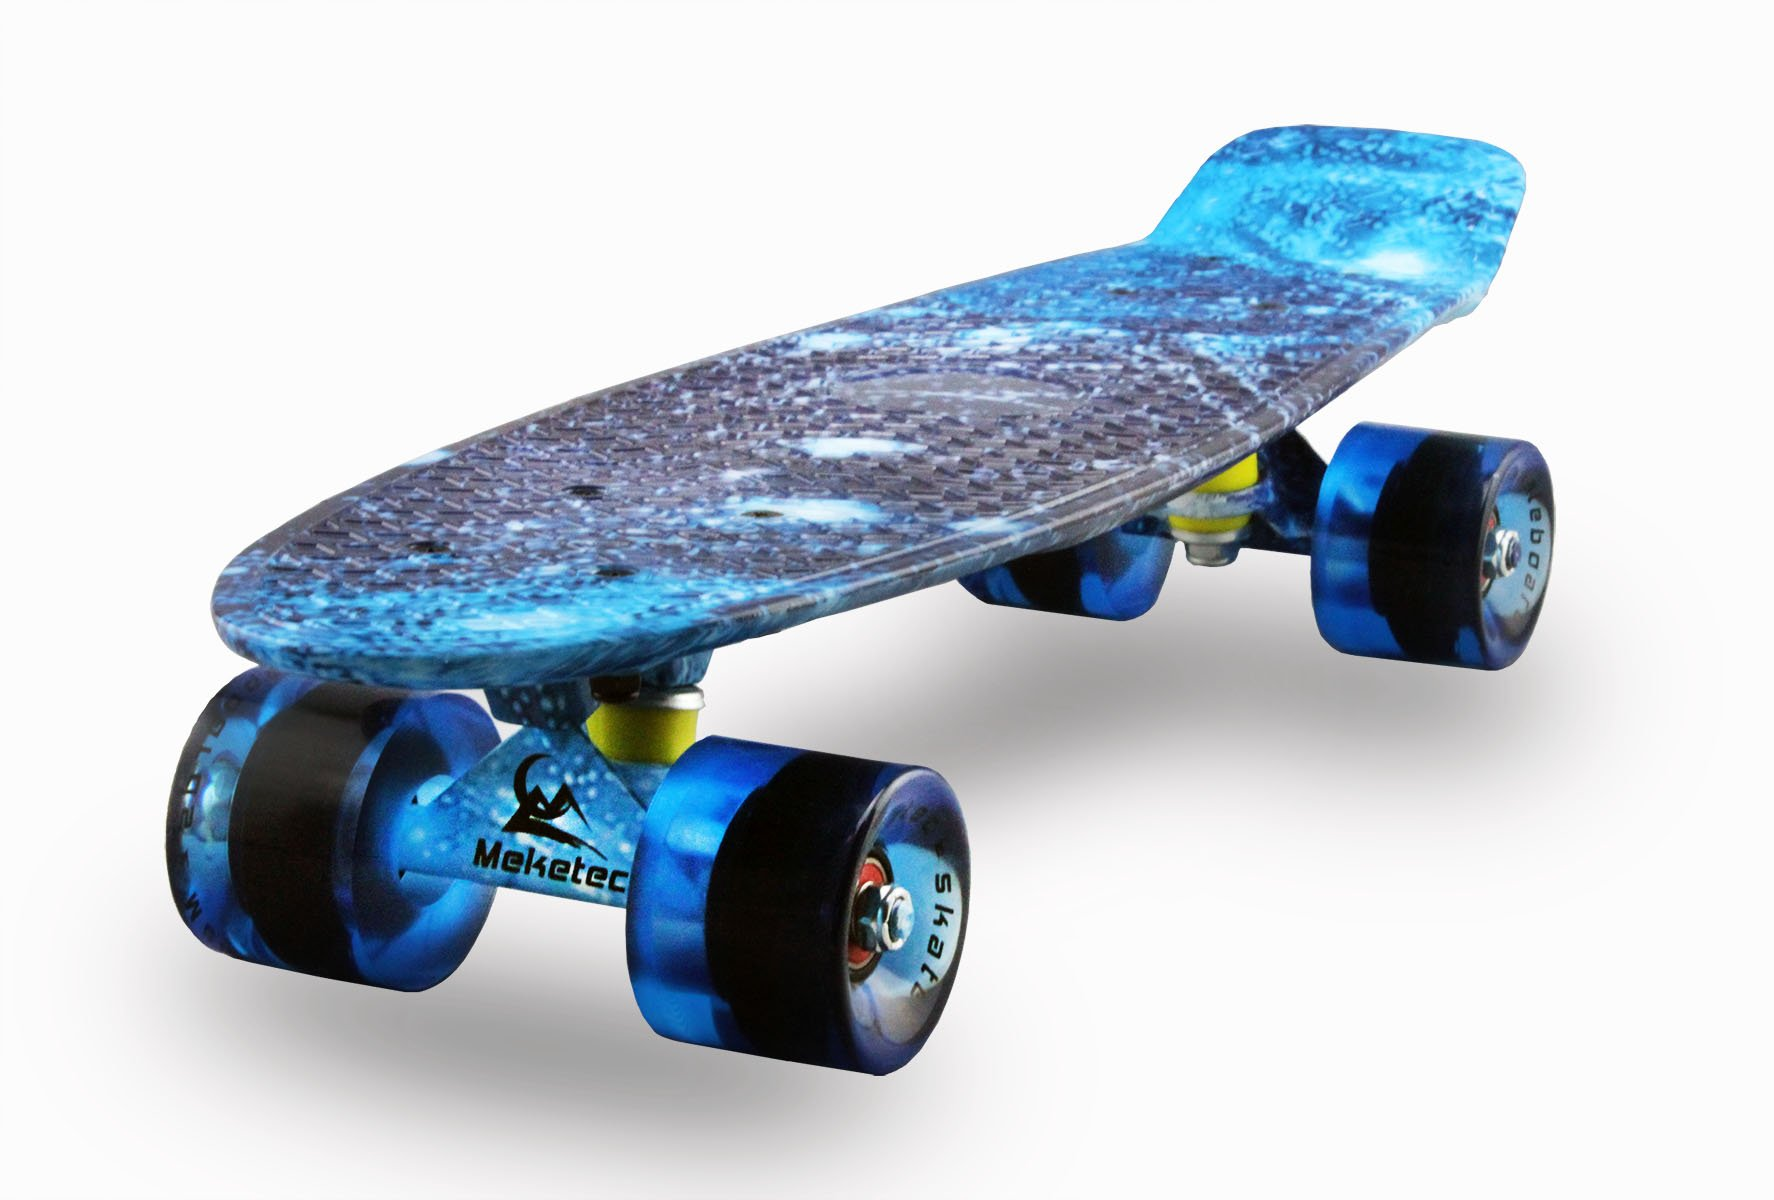 Meketec Skateboards Complete Mini Cruiser Retro Skateboard for Kids Boys Youths Beginners 22 Inch(The Starry Sky) by Meketec